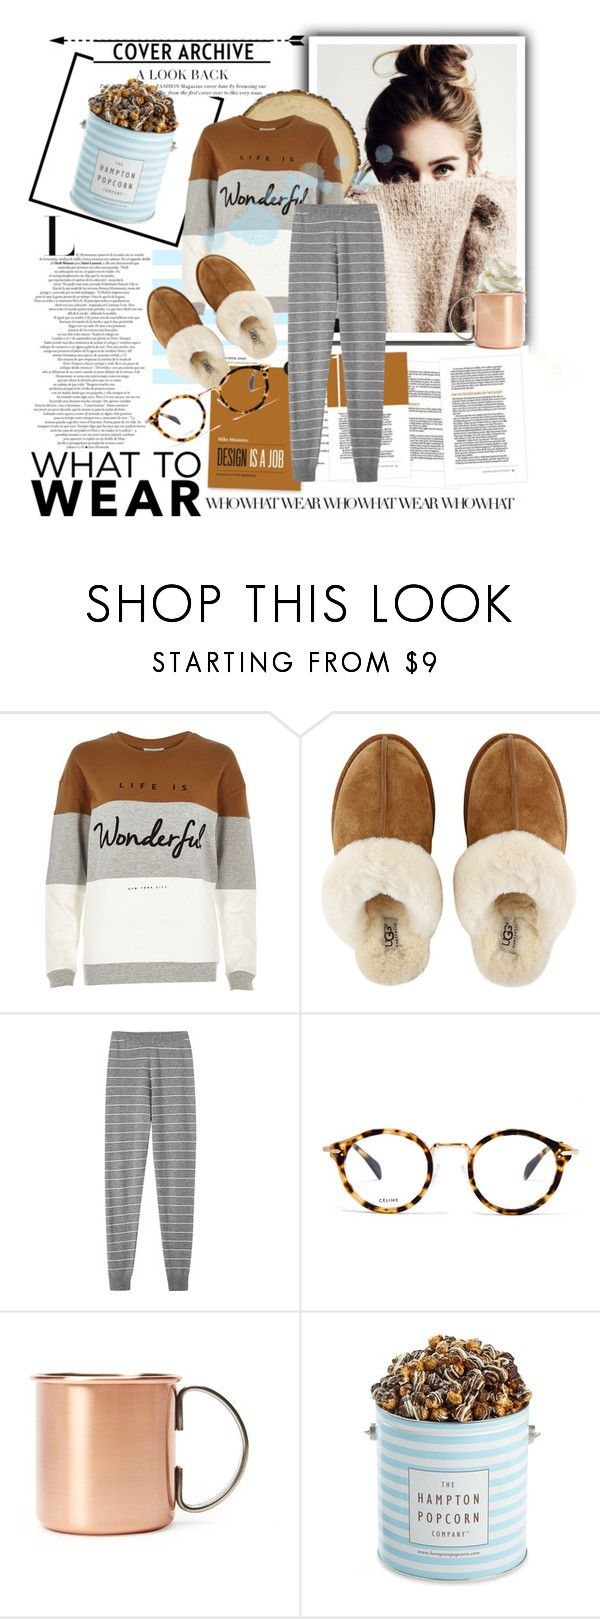 """What to Wear: Netfix Binge"" by pooka-princess on Polyvore featuring River Island, UGG Australia, CÉLINE, Forever 21, The Hampton Popcorn Company and WhatToWear"